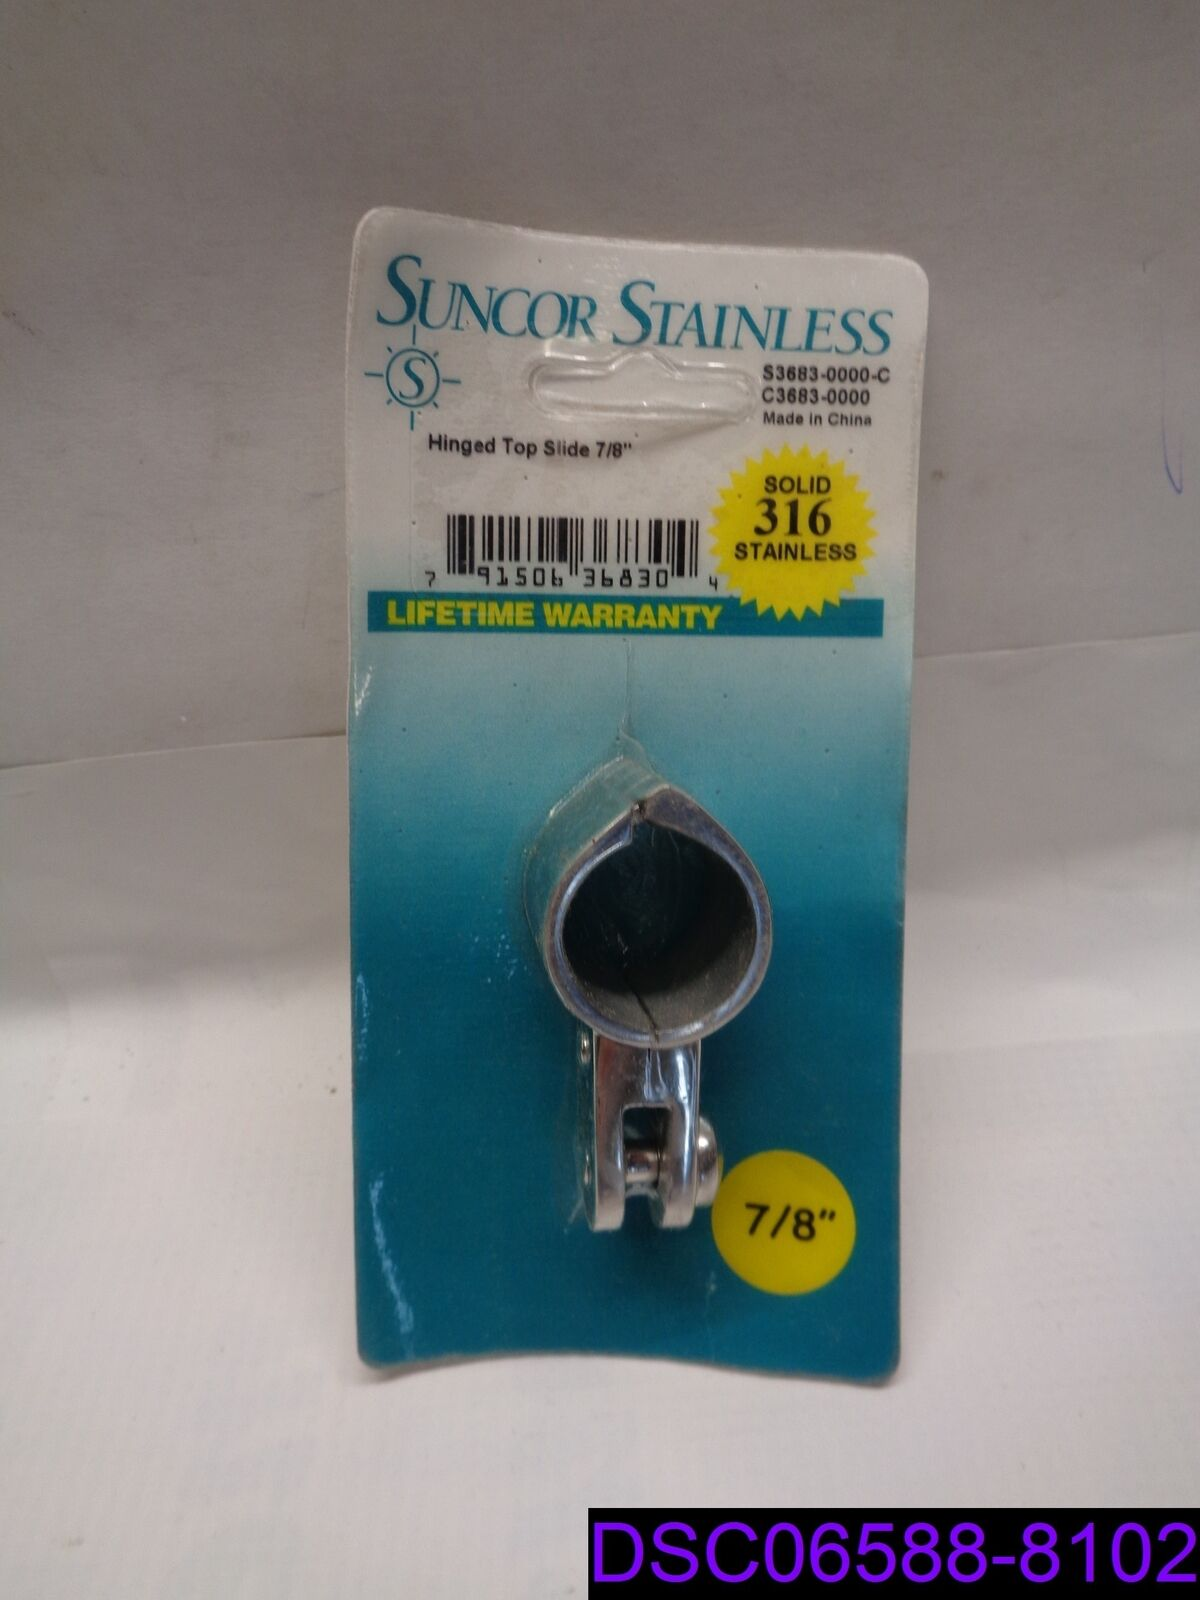 """Qty = 3: Suncor Stainless Hinged Top Slide 7/8"""" 316 Stainless P/N S3683-0000"""